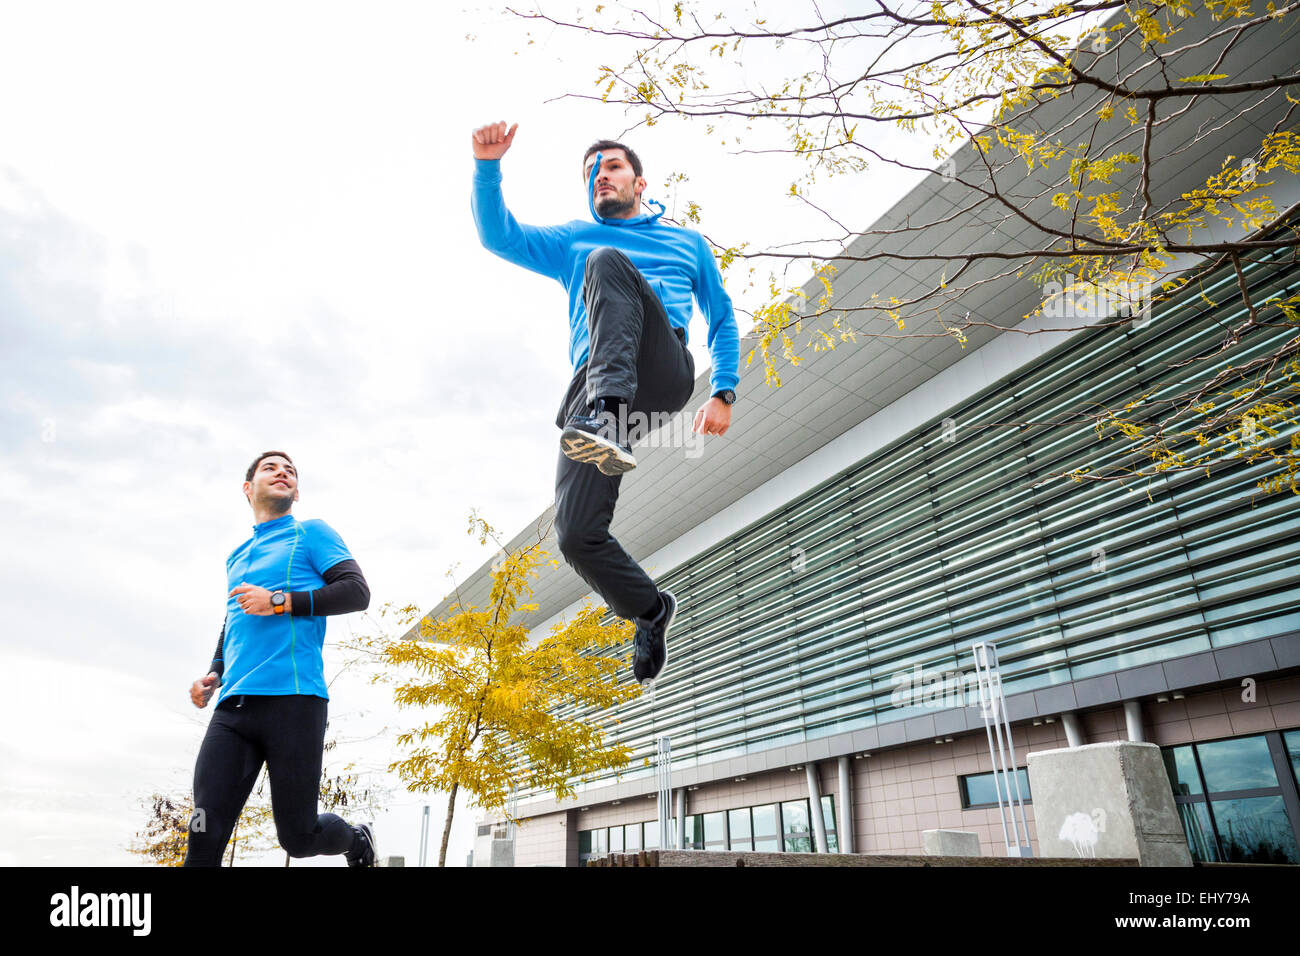 Two male runners jogging and jumping in city - Stock Image